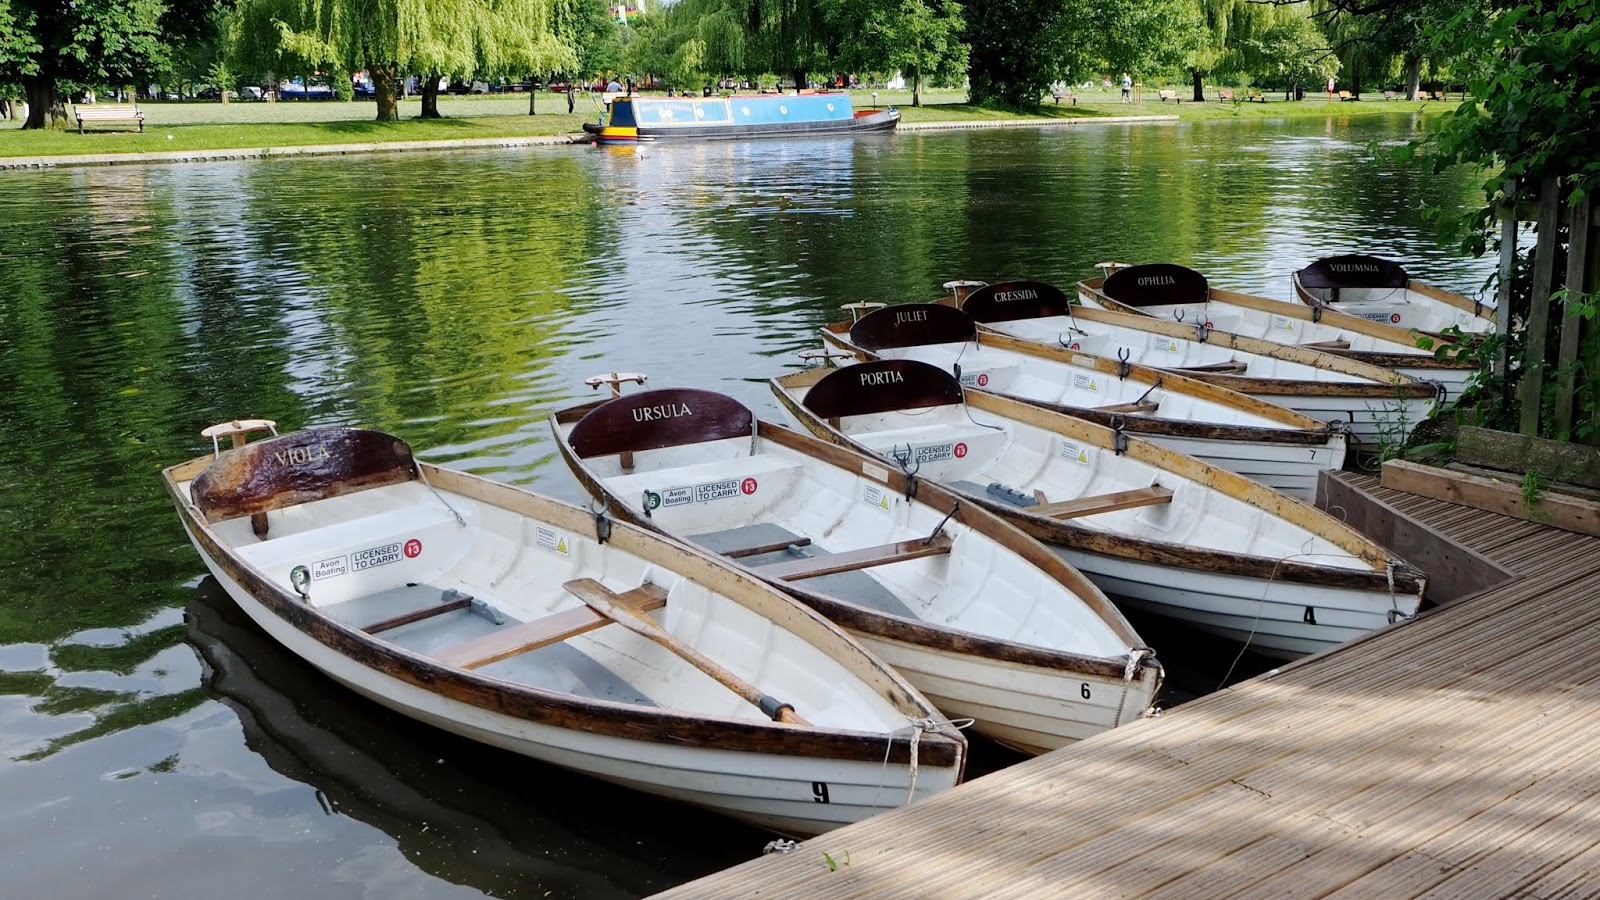 Rowboats on the river named after female Shakespeare characters